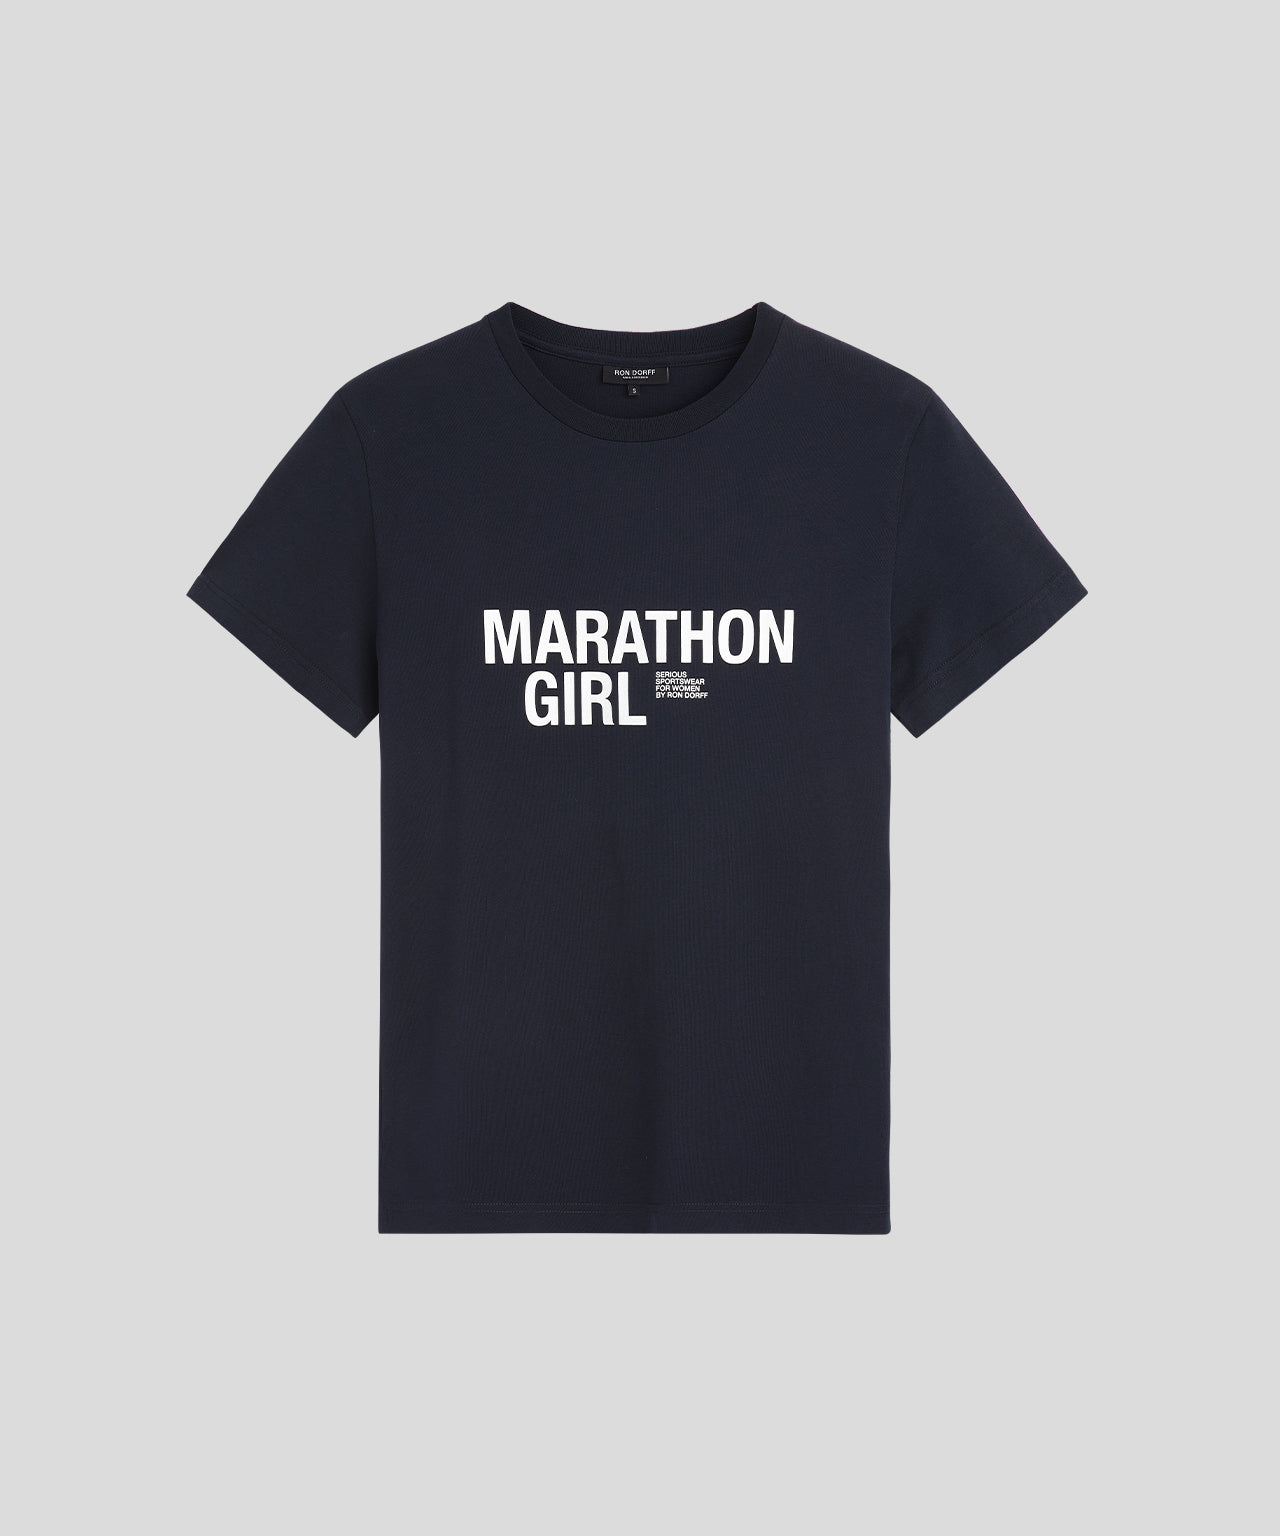 T-Shirt MARATHON GIRL - navy